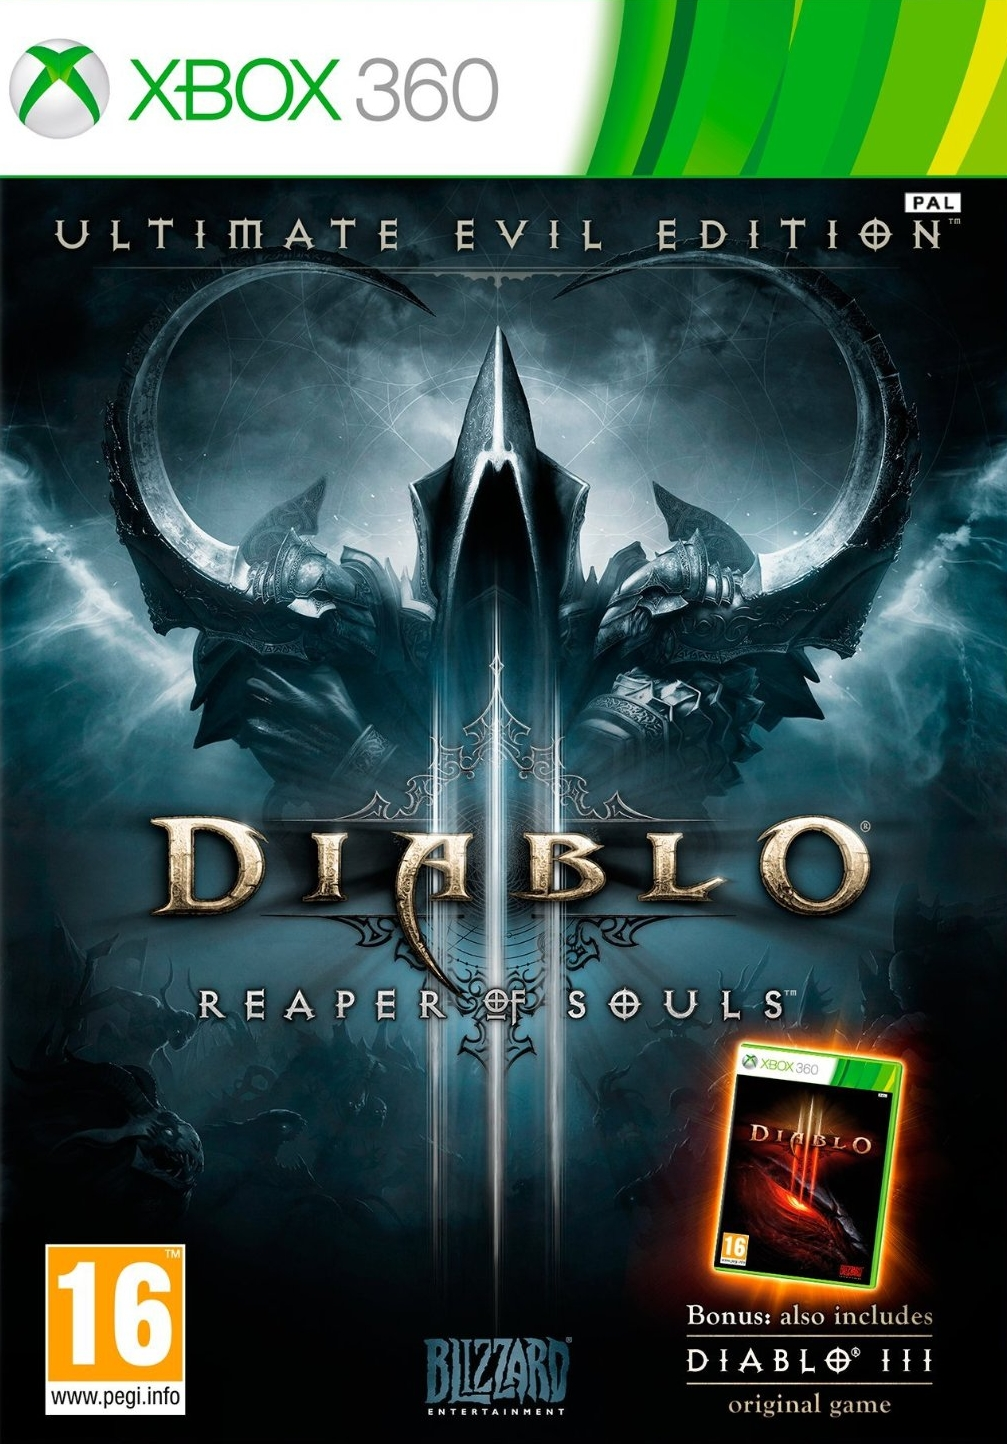 Diablo III (3): Reaper of Souls. Ultimate Evil Edition